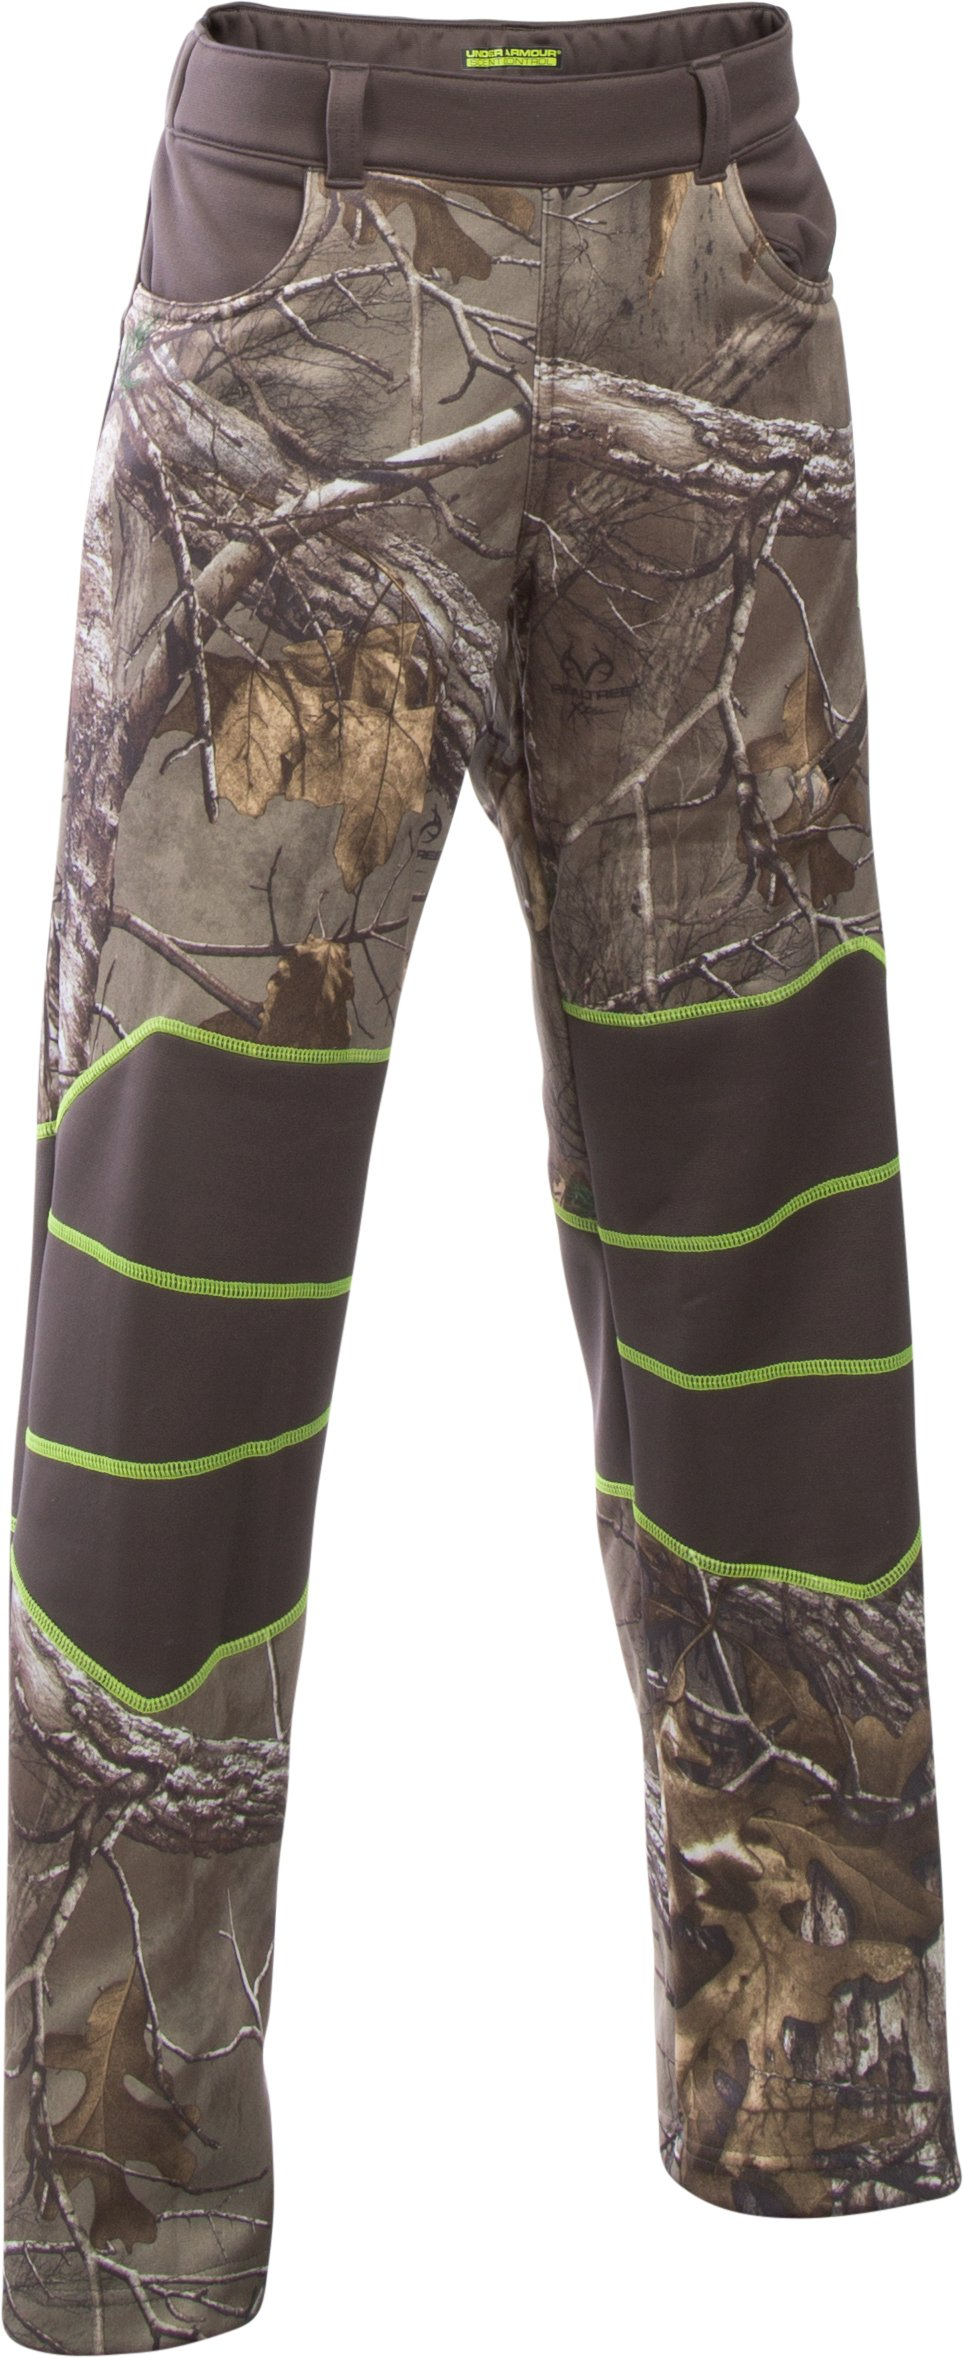 Boys' UA Scent Control Fleece Pants, REALTREE AP-XTRA